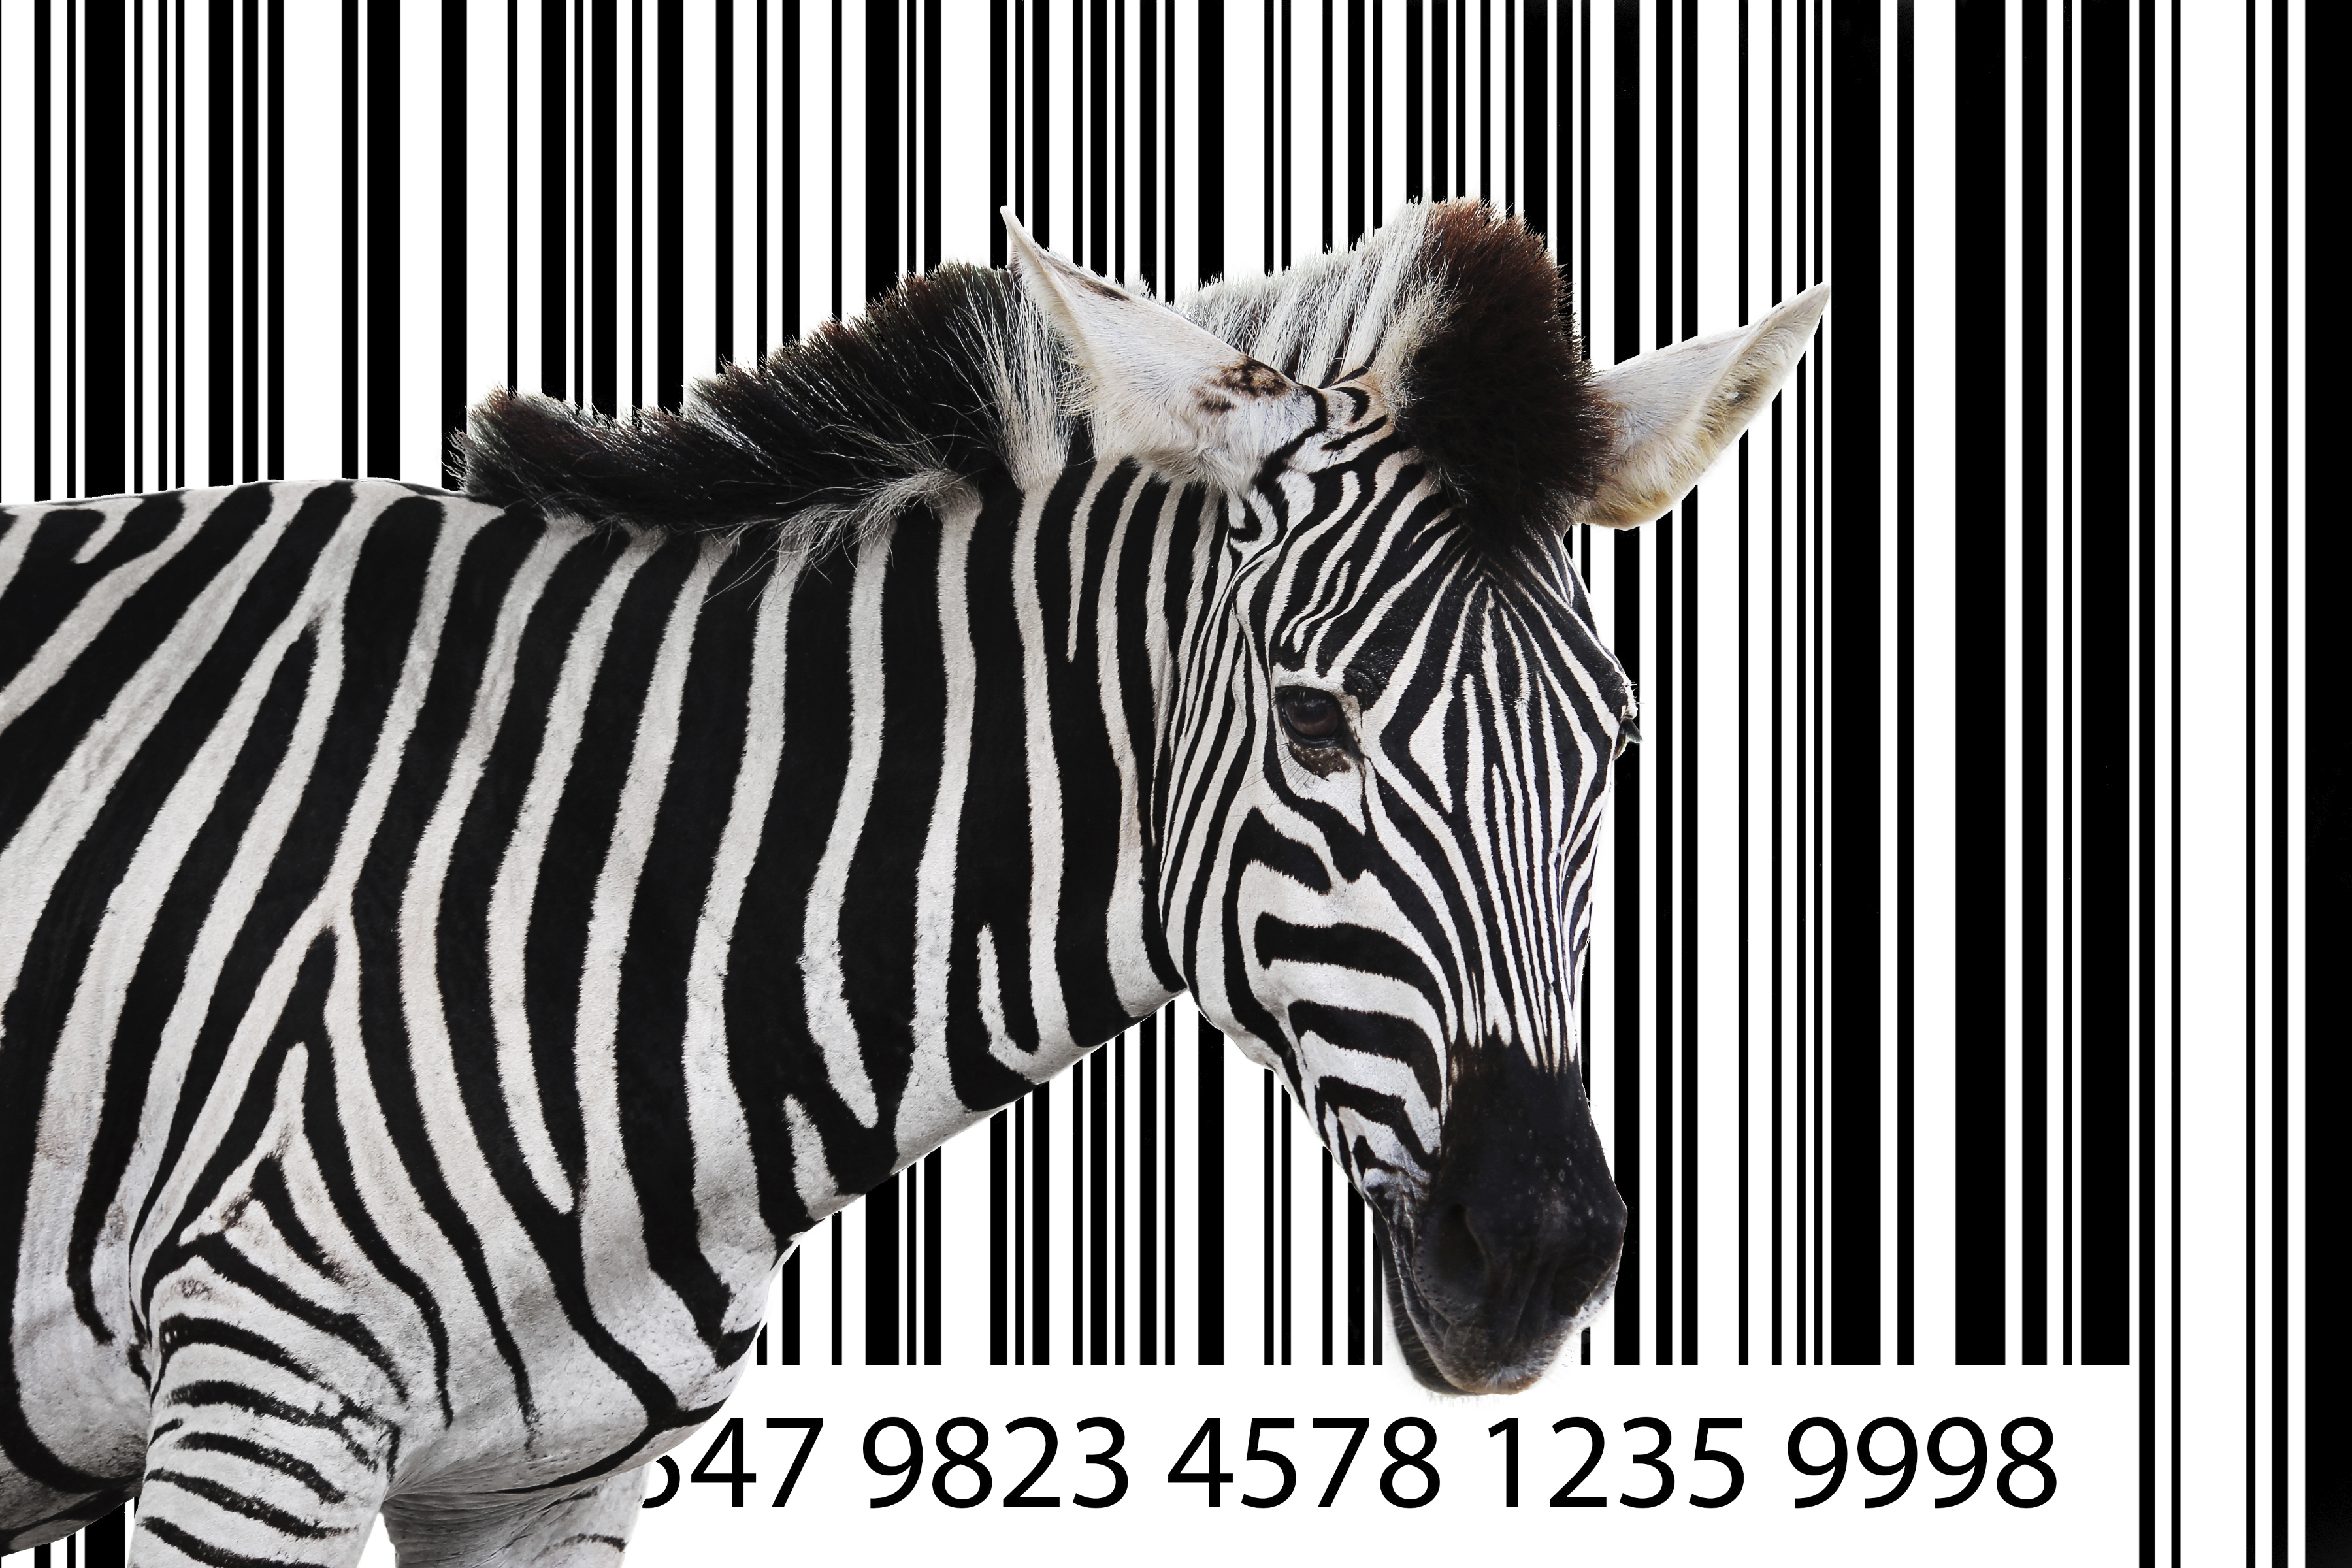 Zebra with a barcode